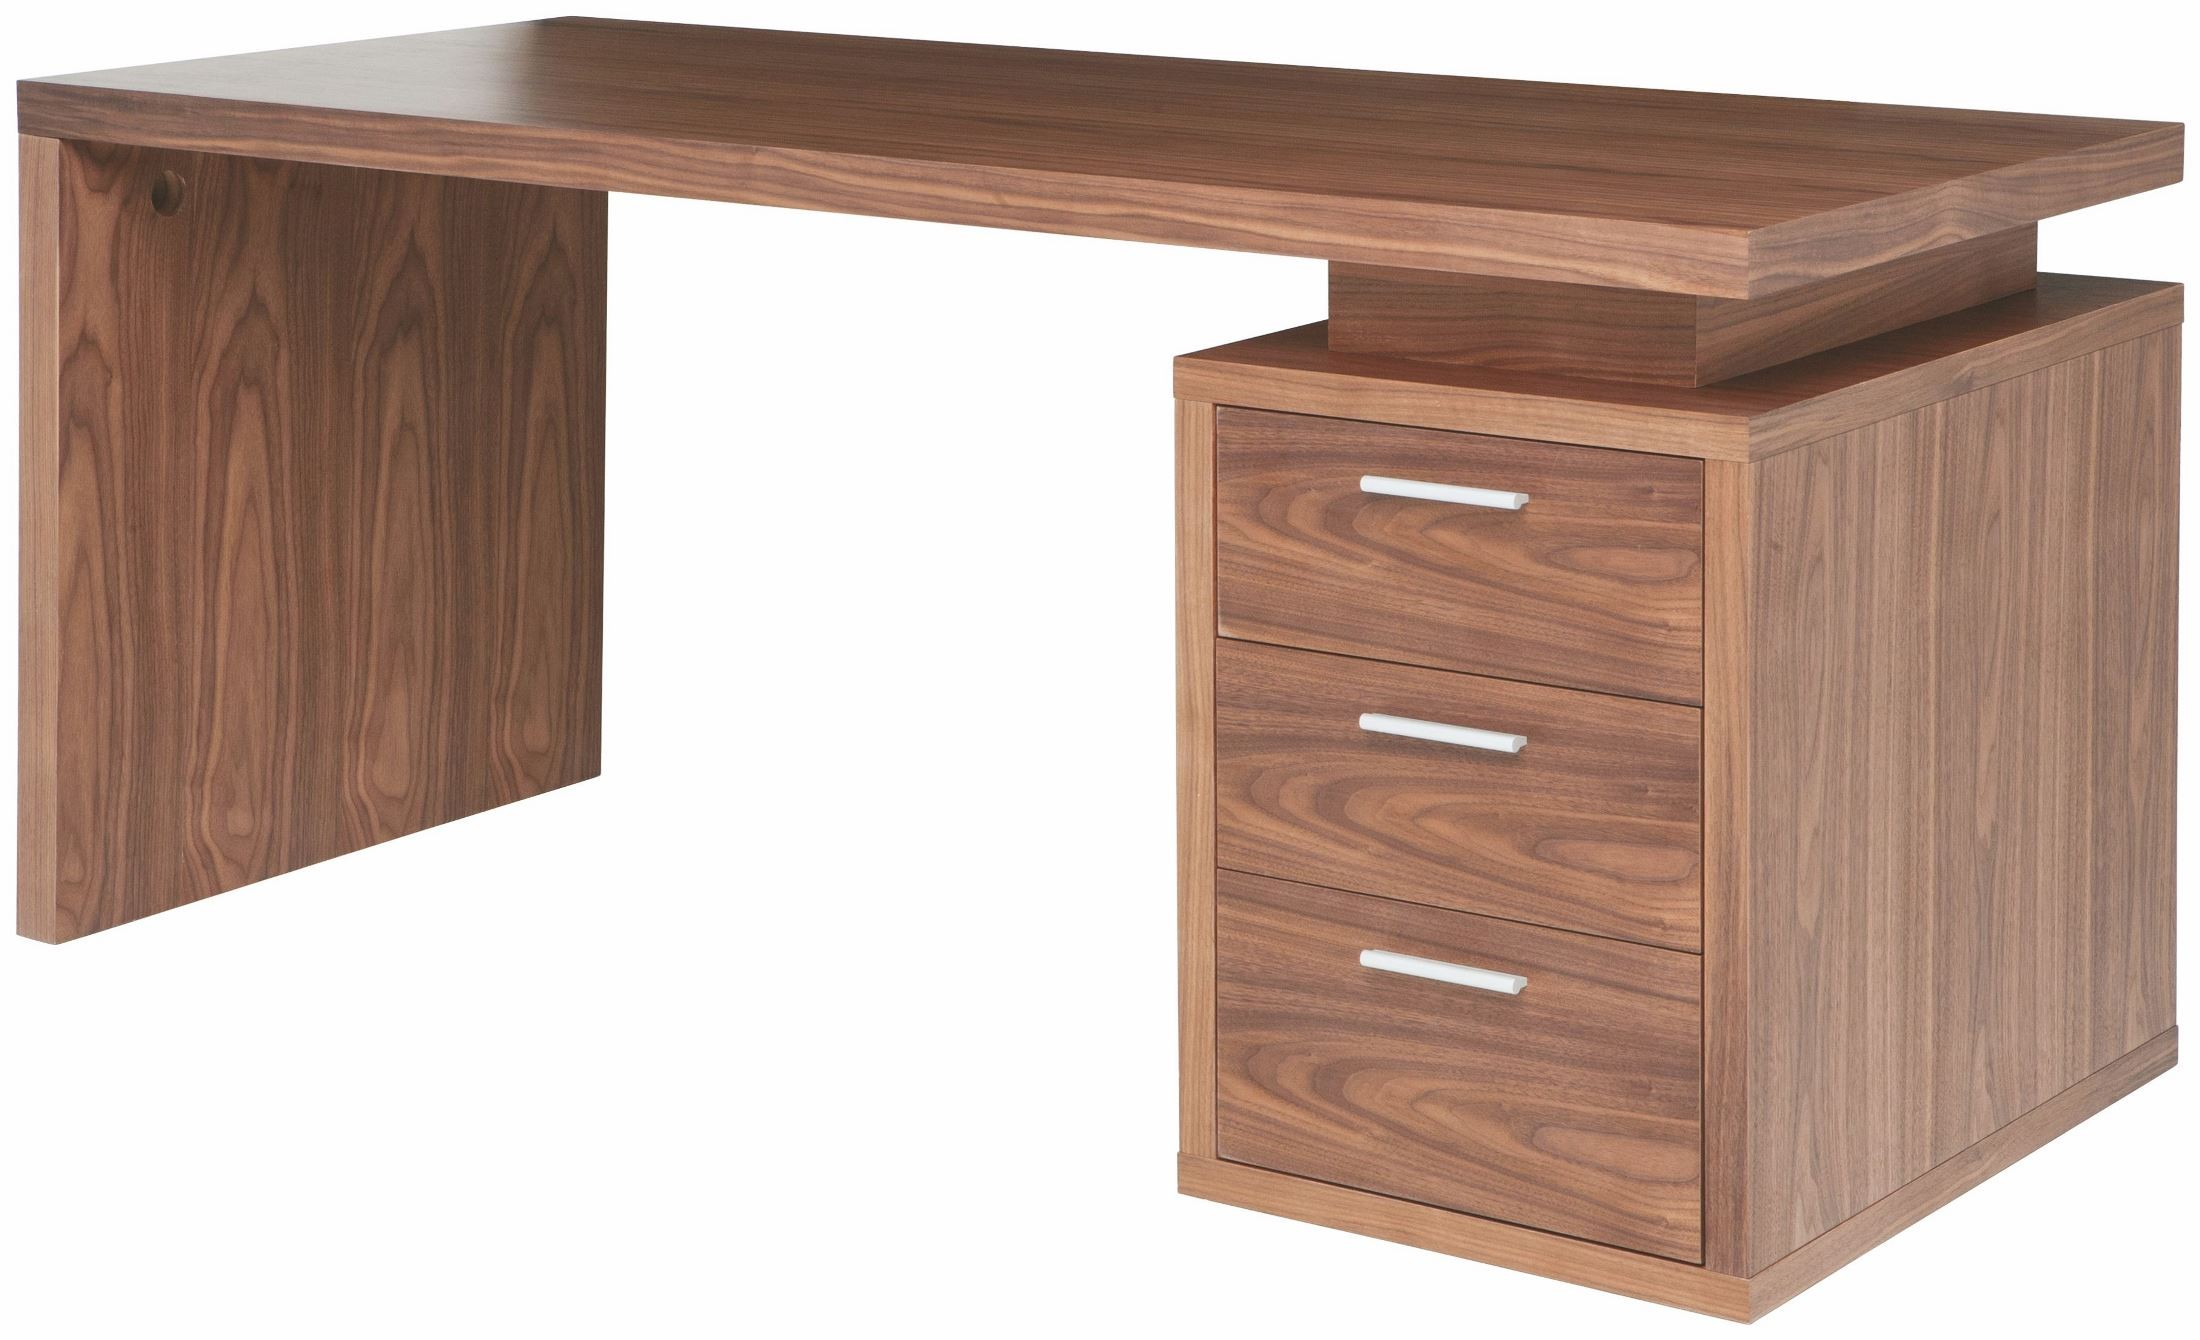 Walnut Wood Furniture ~ Benjamin walnut wood desk table from nuevo coleman furniture